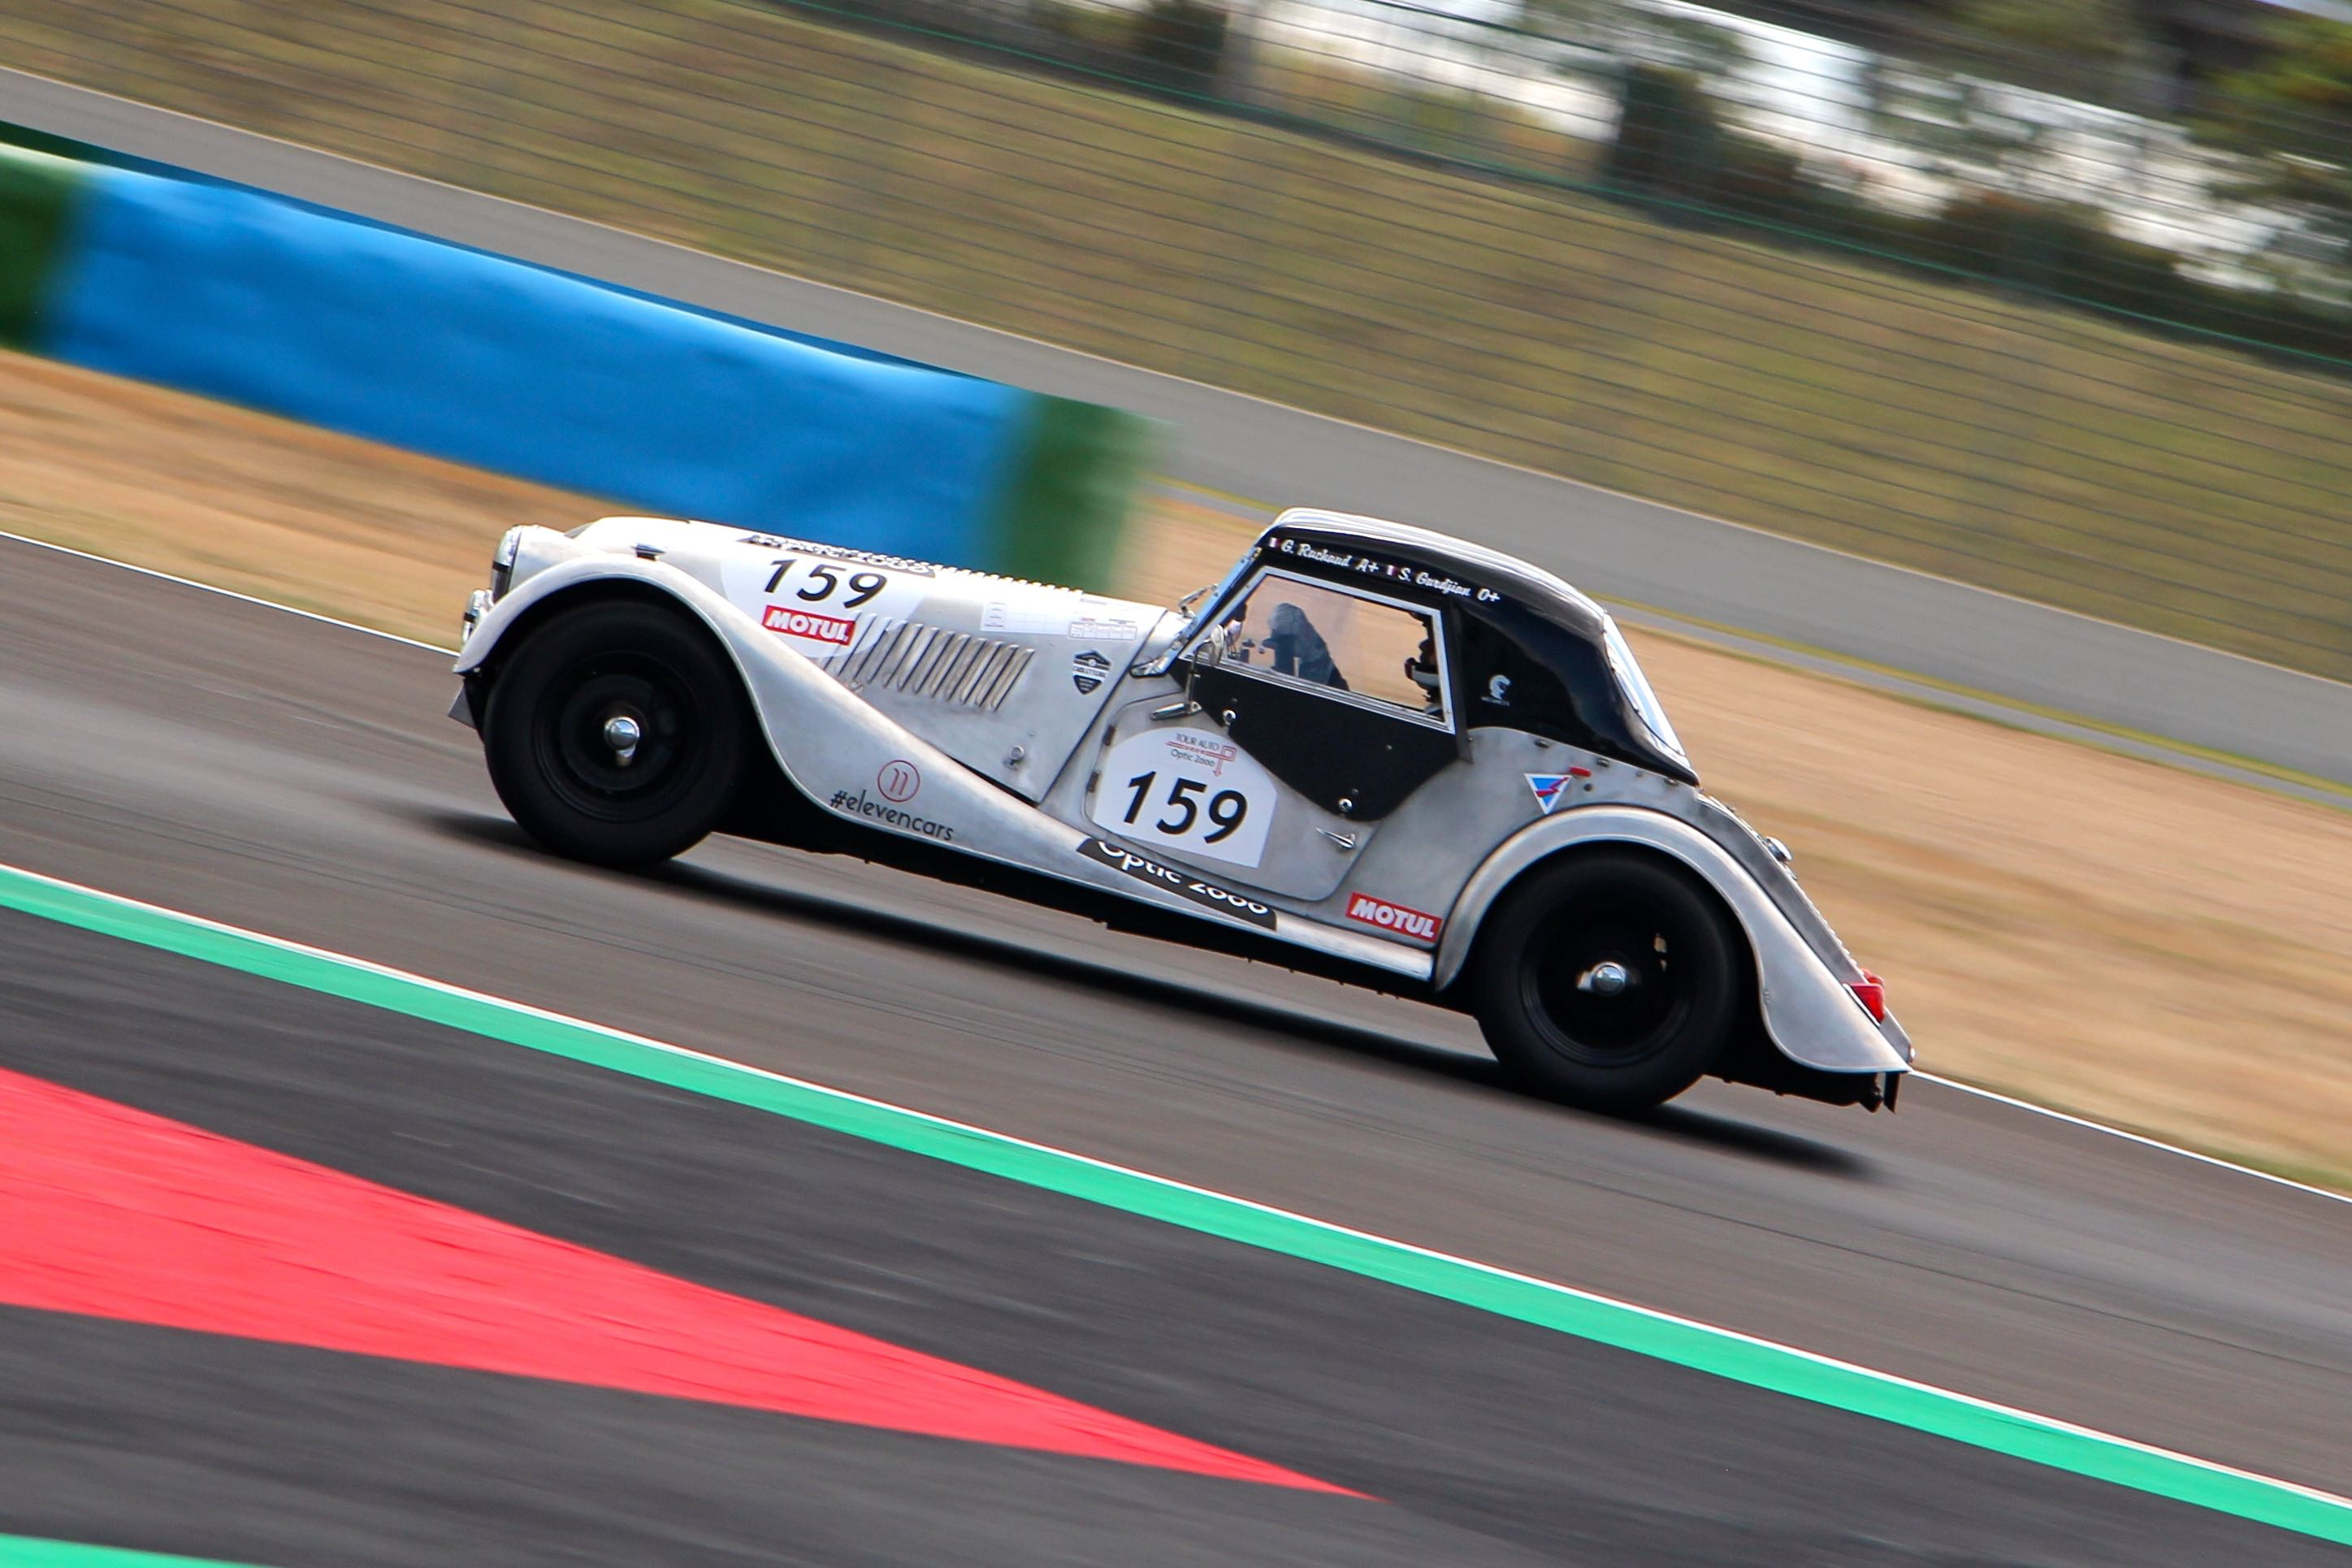 Morgan 4 Super Sport - circuit de Nevers Magny-Cours - Tour Auto 2020 - photo Ludo Ferrari